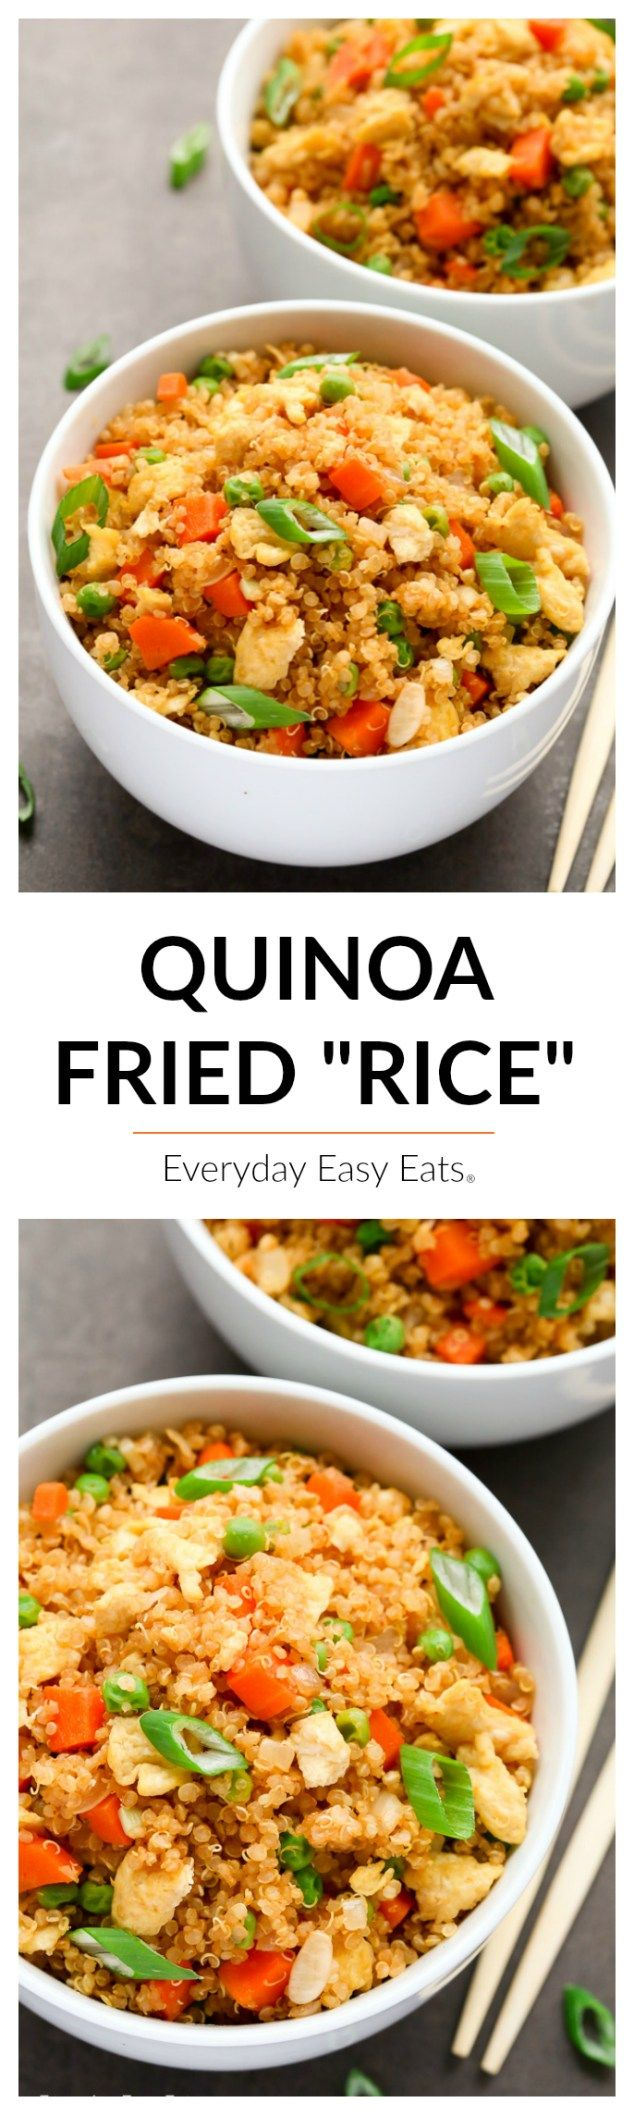 """This tasty recipe for Quinoa Fried """"Rice"""" is a healthier spin on a takeout favorite! A simple-to-make, protein-packed vegetarian main or side dish."""